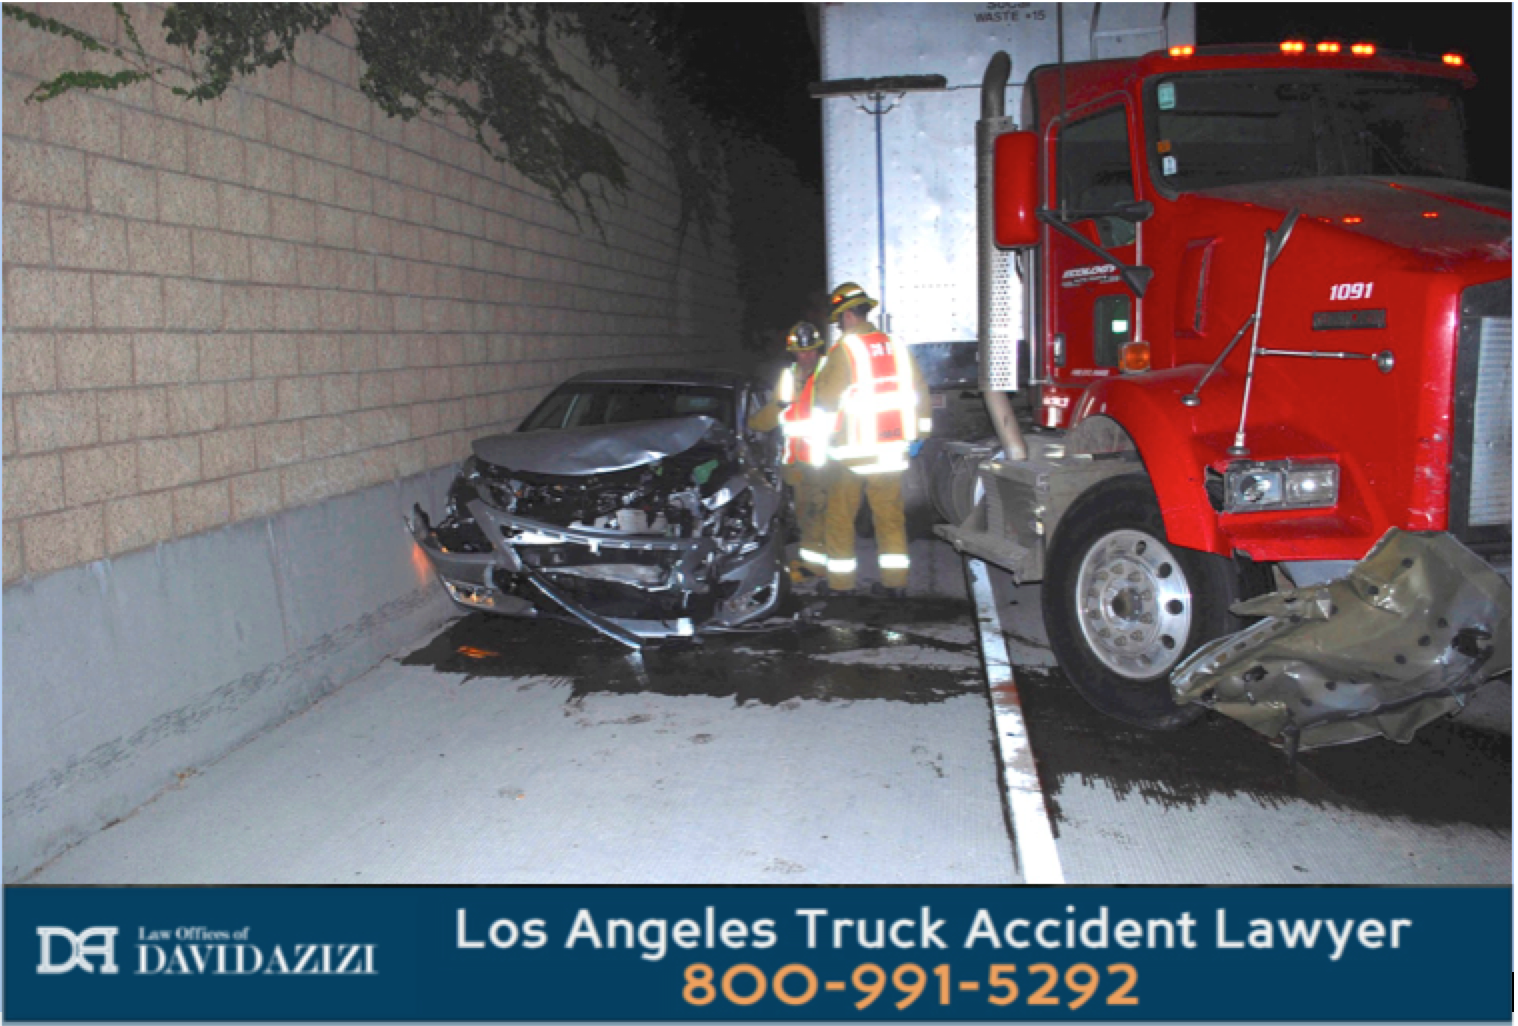 Truck and Car Collision - Law Offices of David Azizi